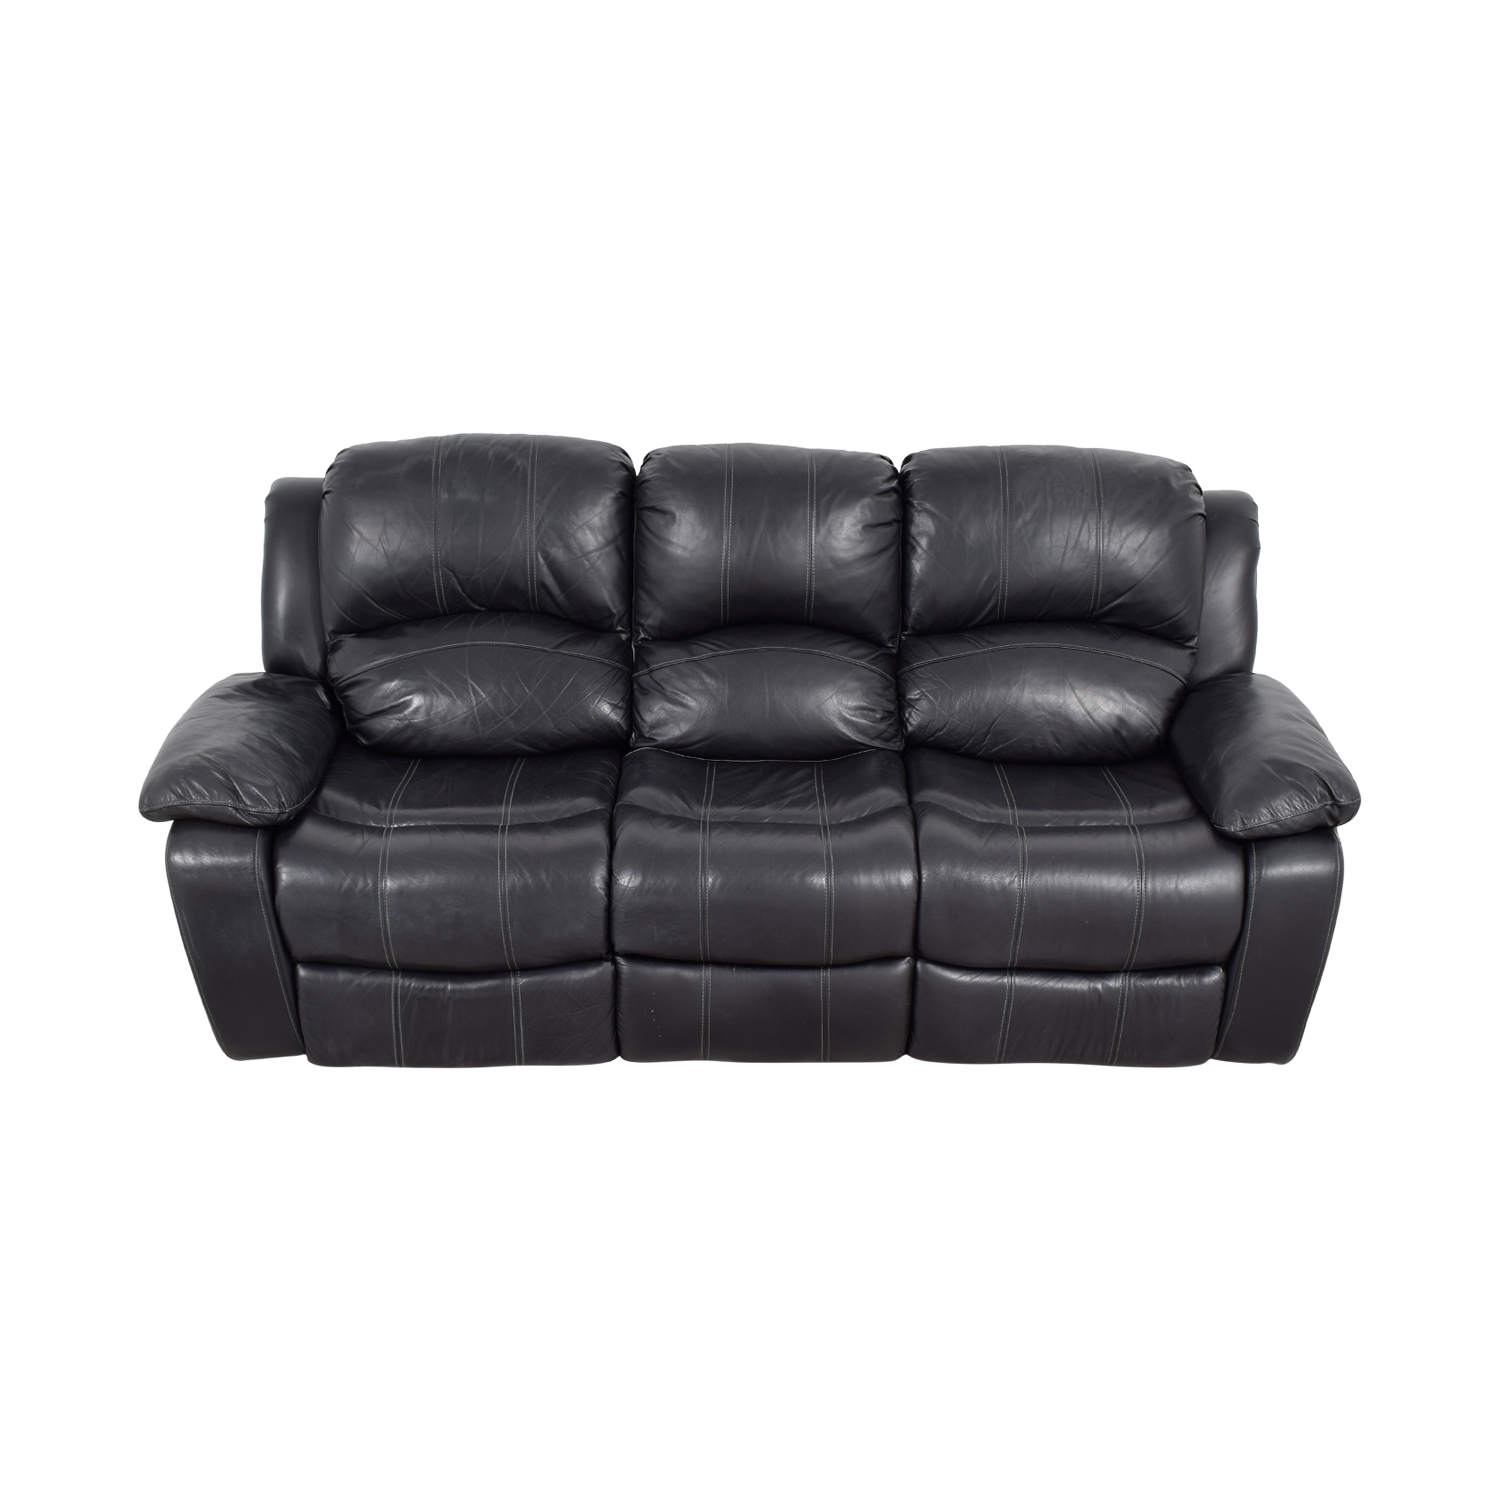 Sofa Leather Workshop: Sofas: Used Sofas For Sale